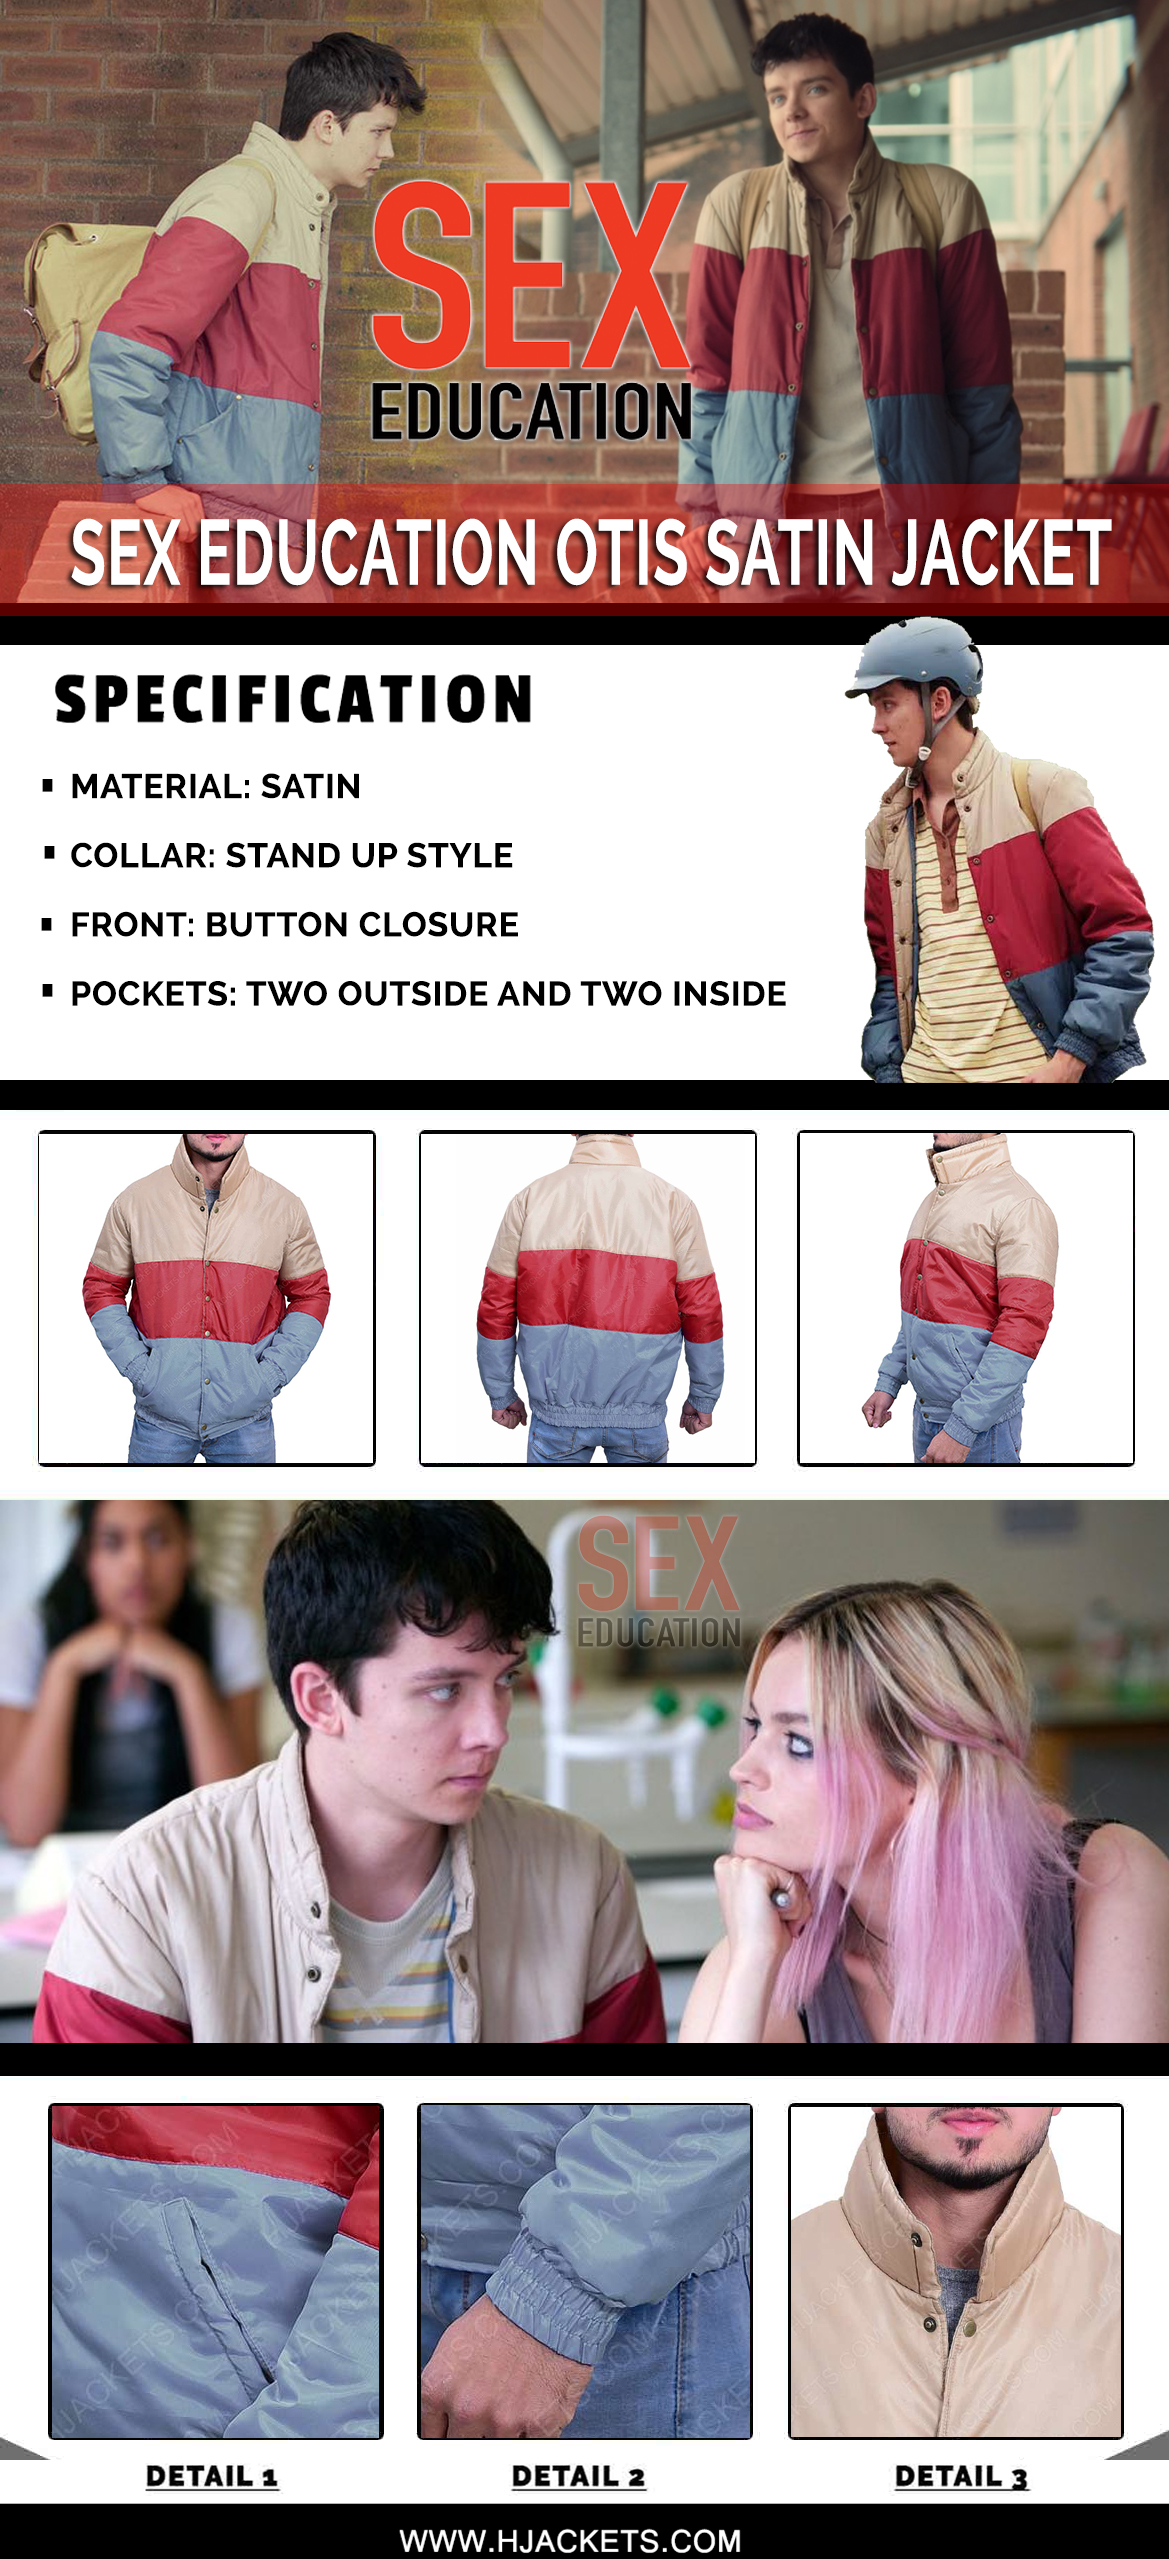 sex education otis jacket infographic